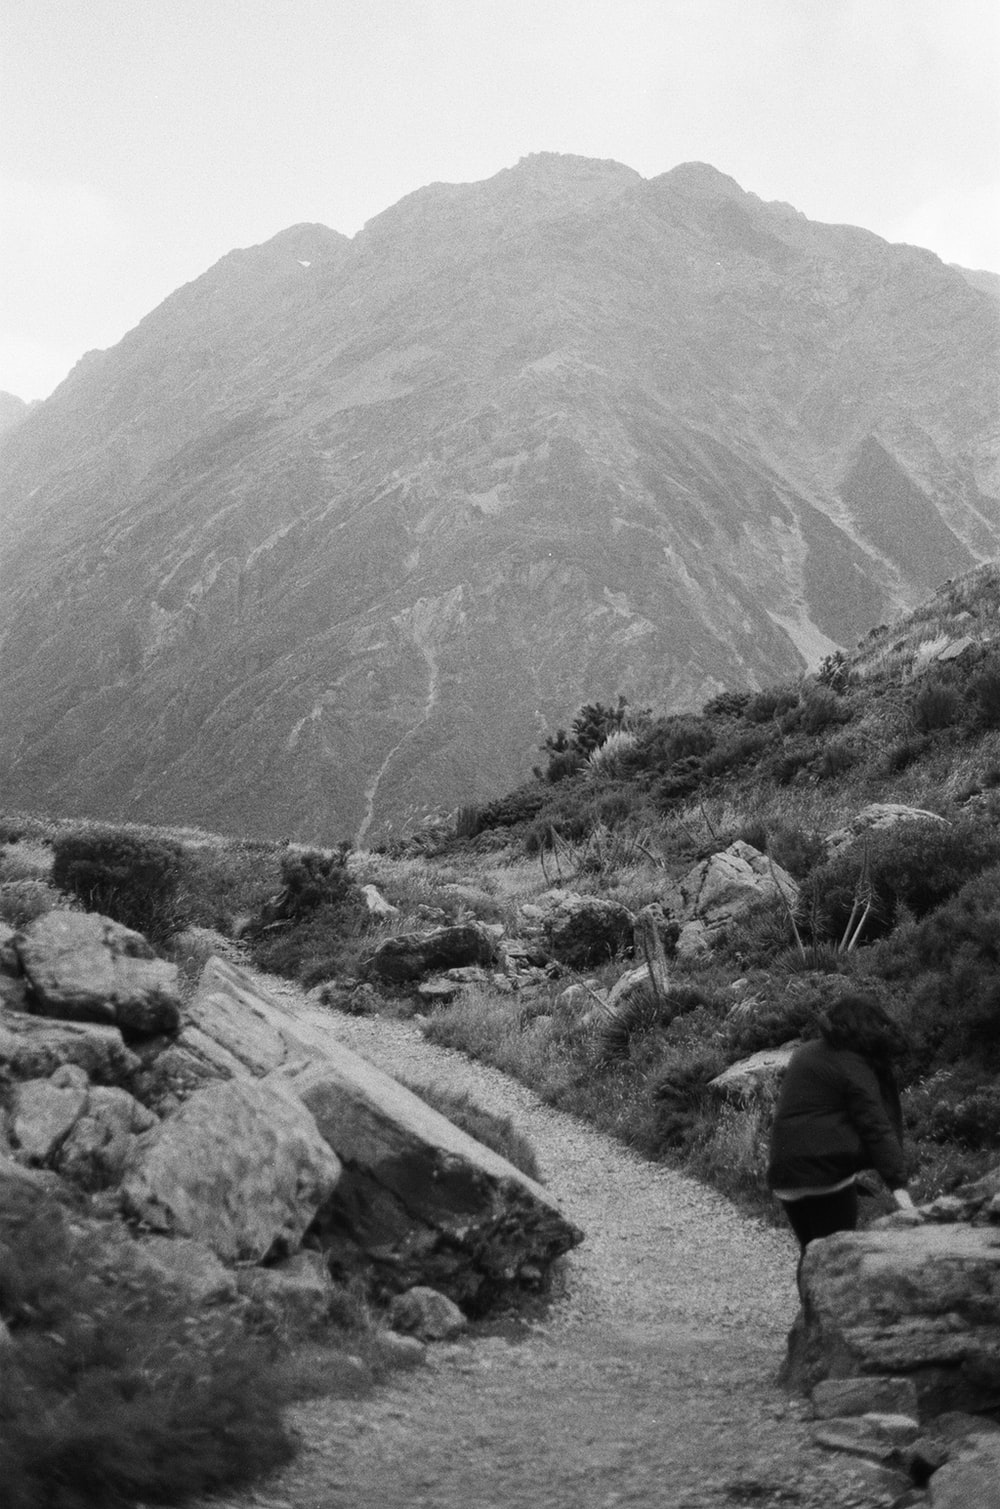 grayscale photo of person sitting on rock near mountain